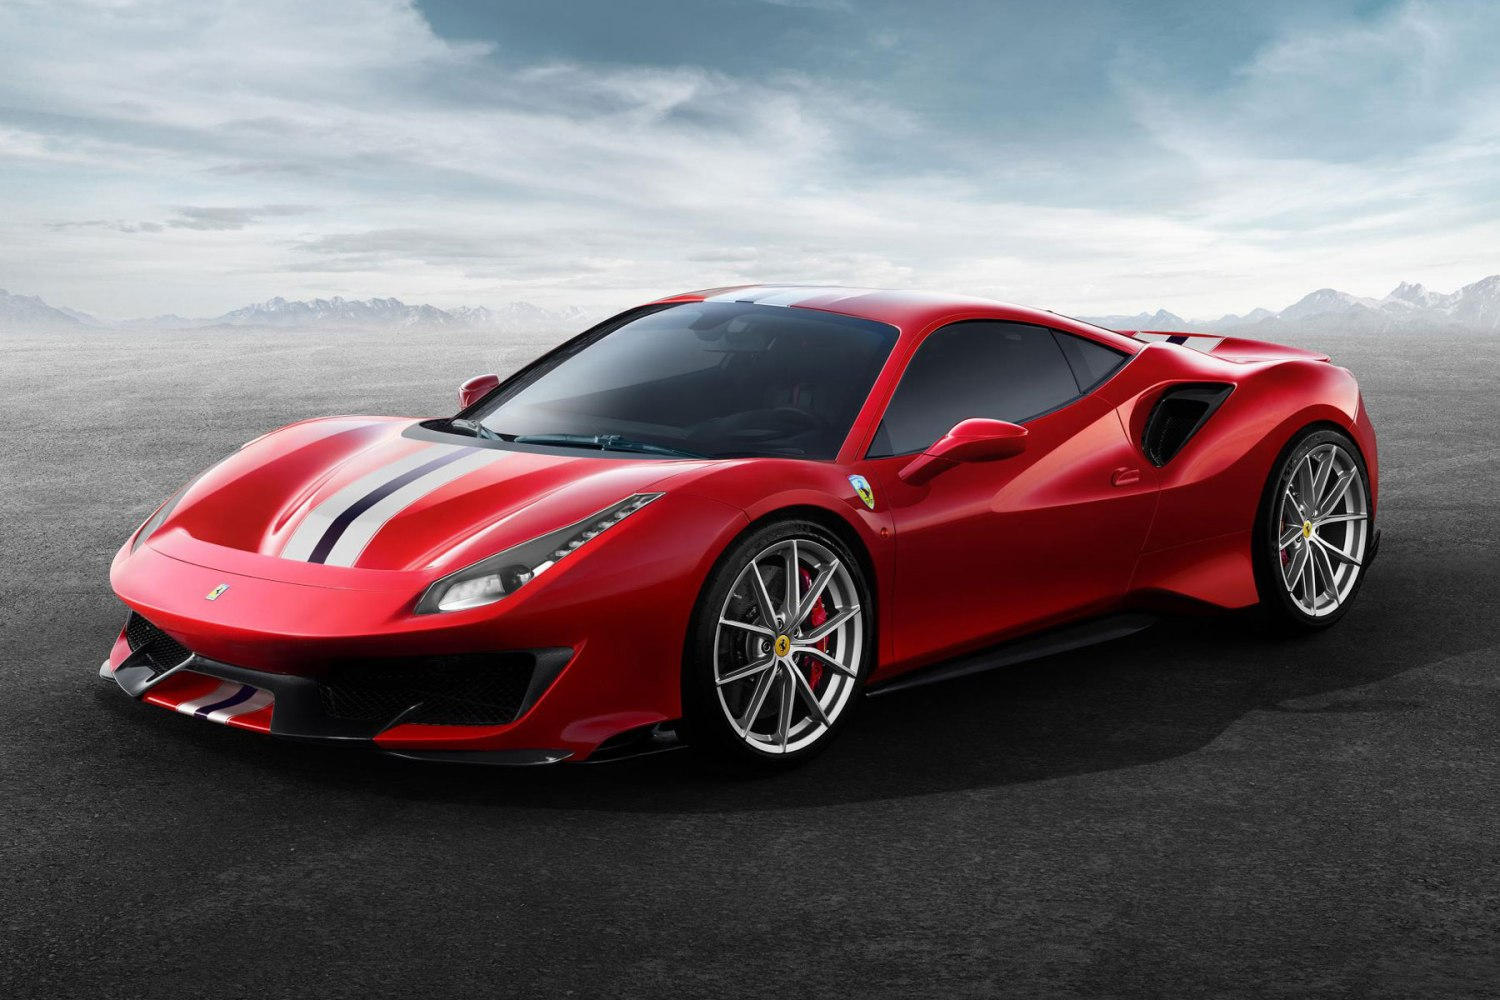 Ferrari 488 Pista/Spider – 2.85 seconds